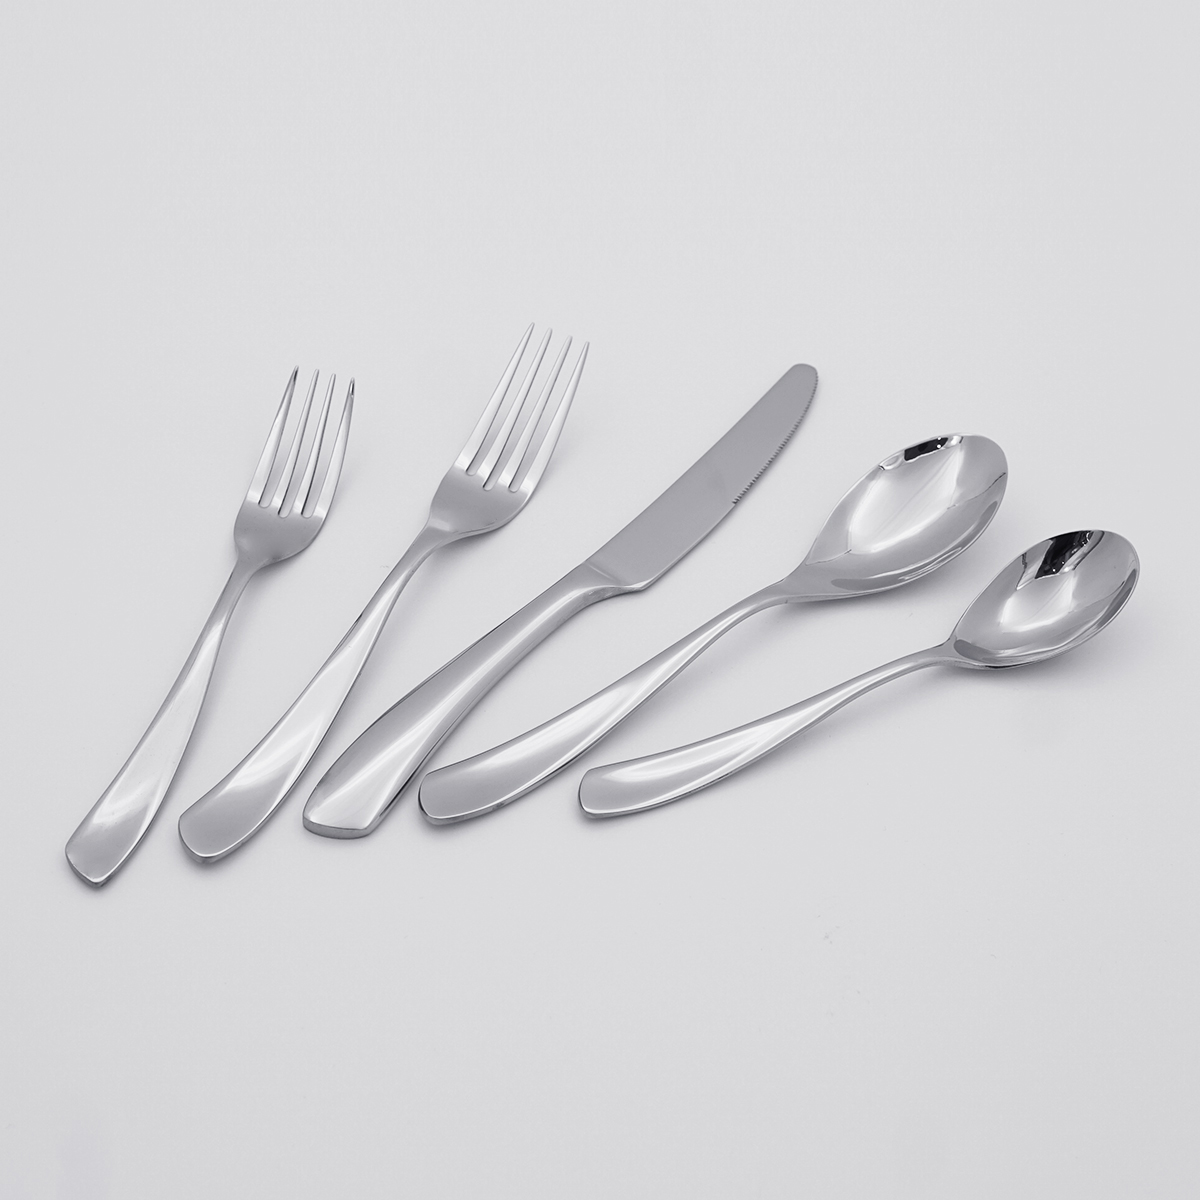 Unique Design Creative Cutlery 304 Stainless Steel Silverware Flatware Sets for Restaurant